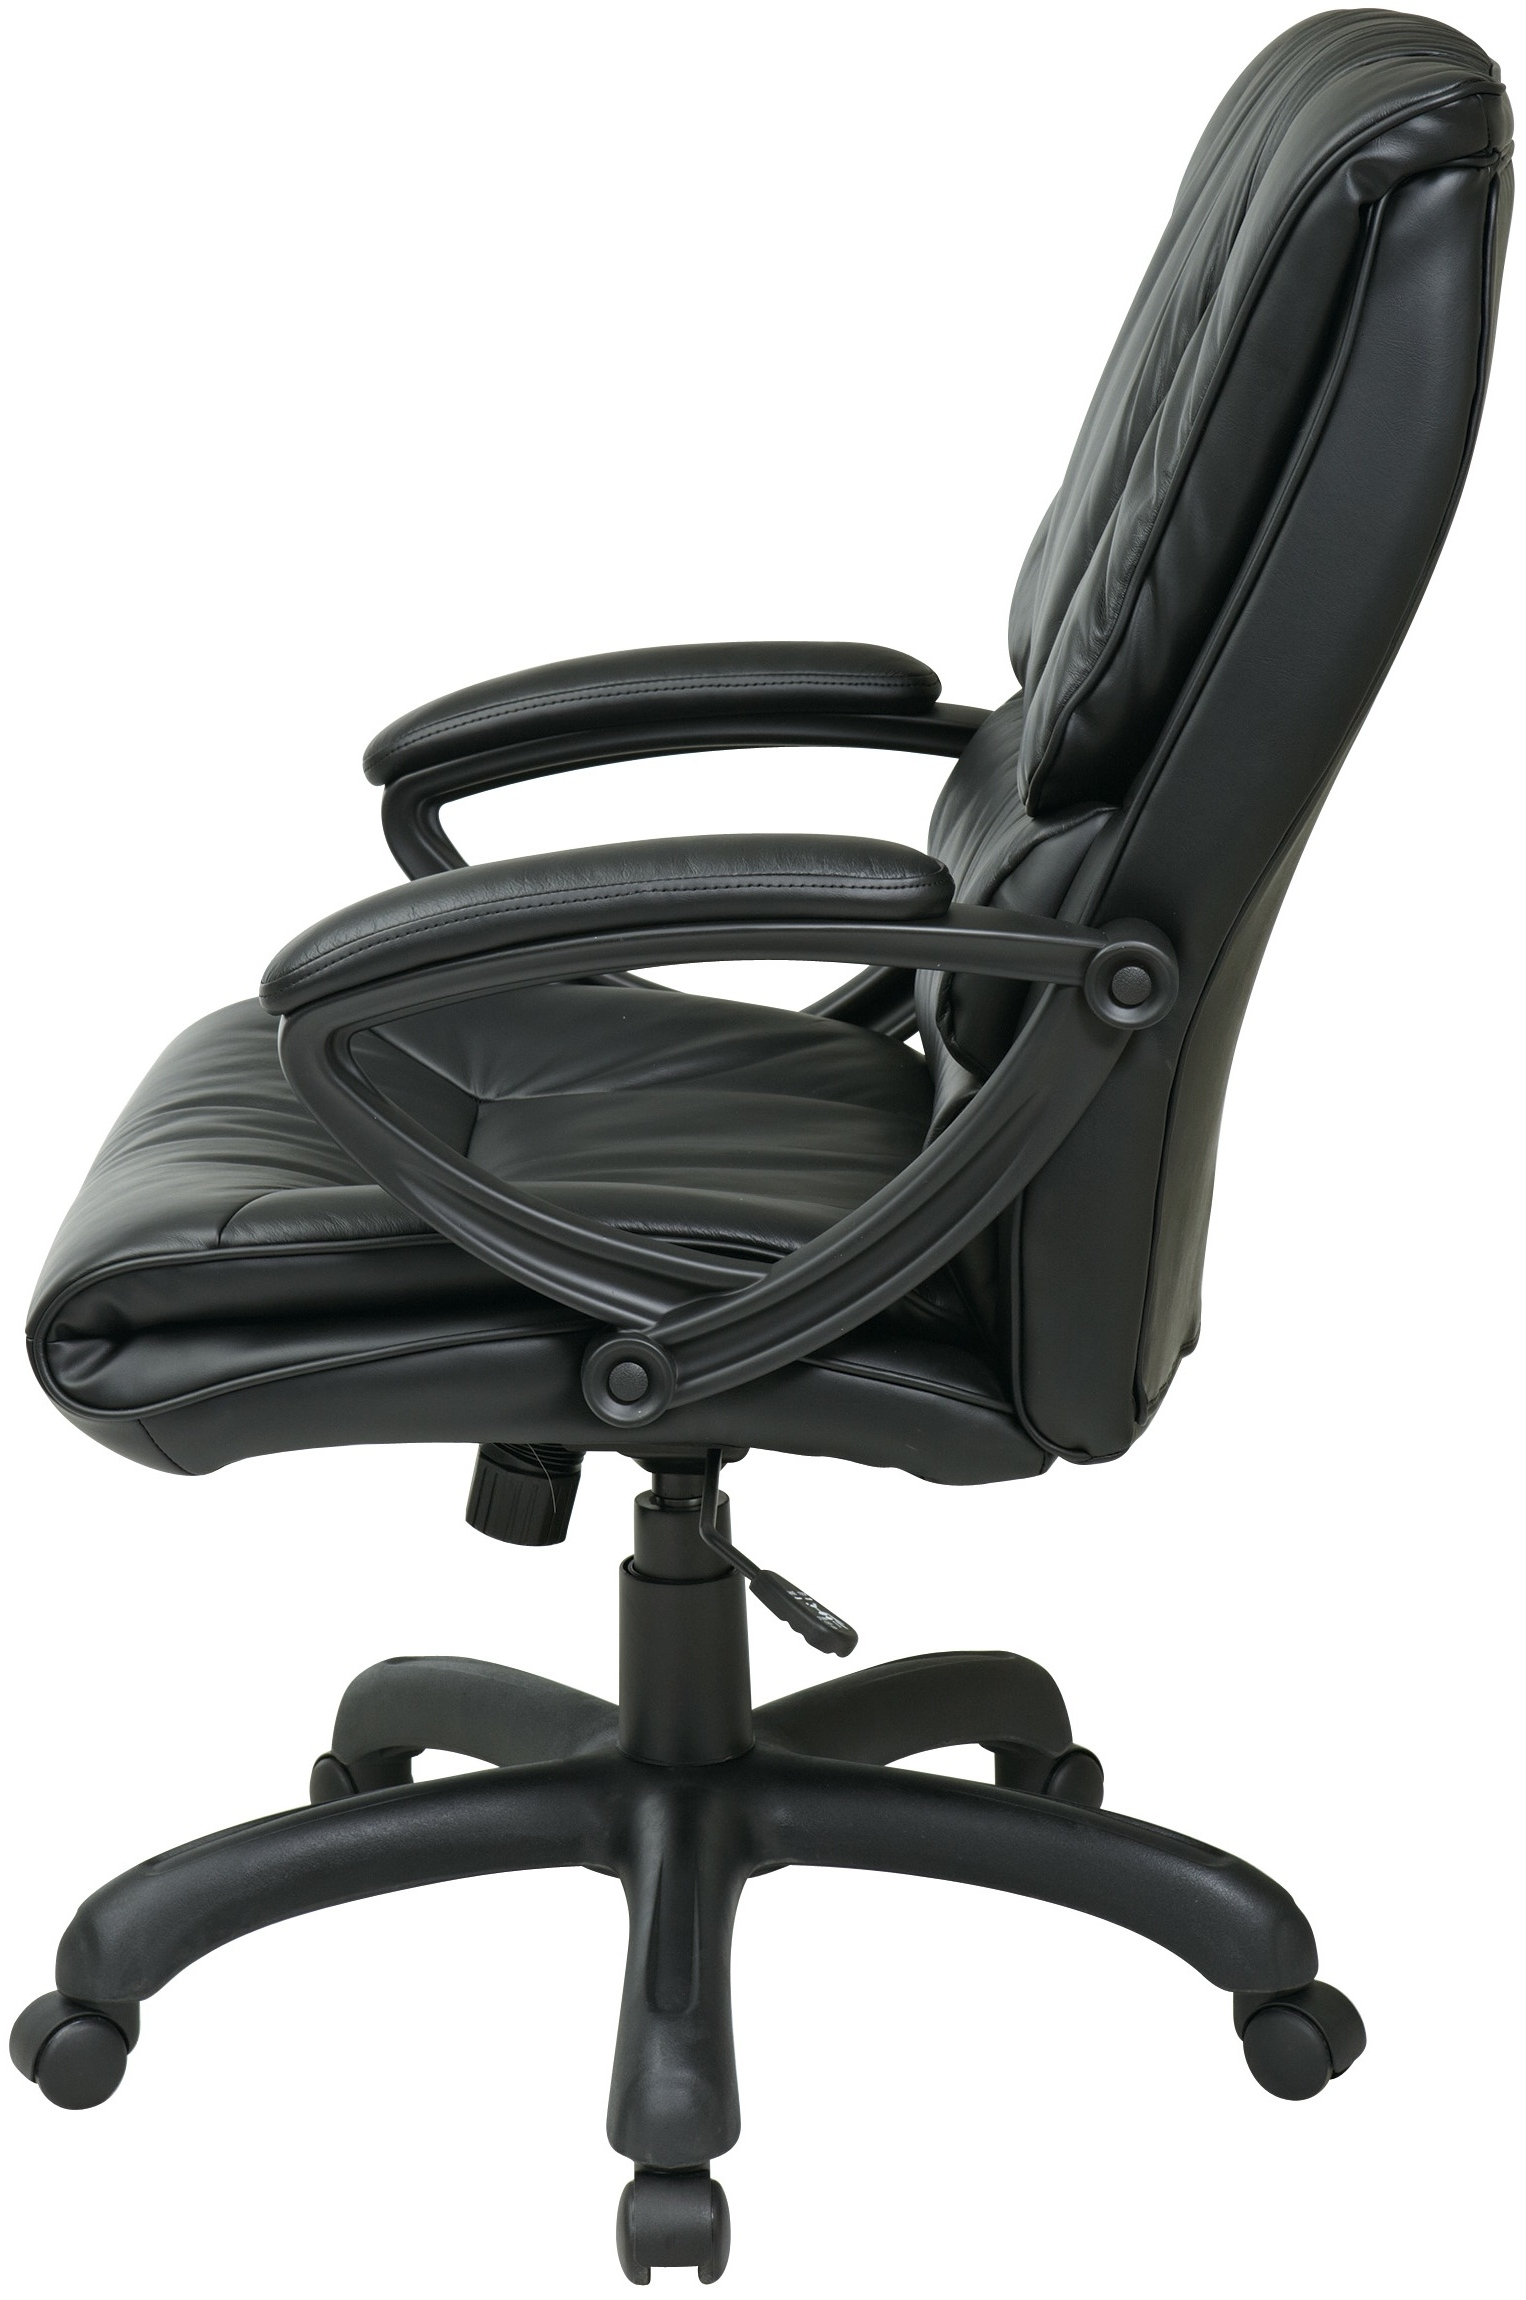 Executive Office Side Chairs Pertaining To Current Ex6710 Office Star – High Back Executive Chair With Loop Arms (View 8 of 20)